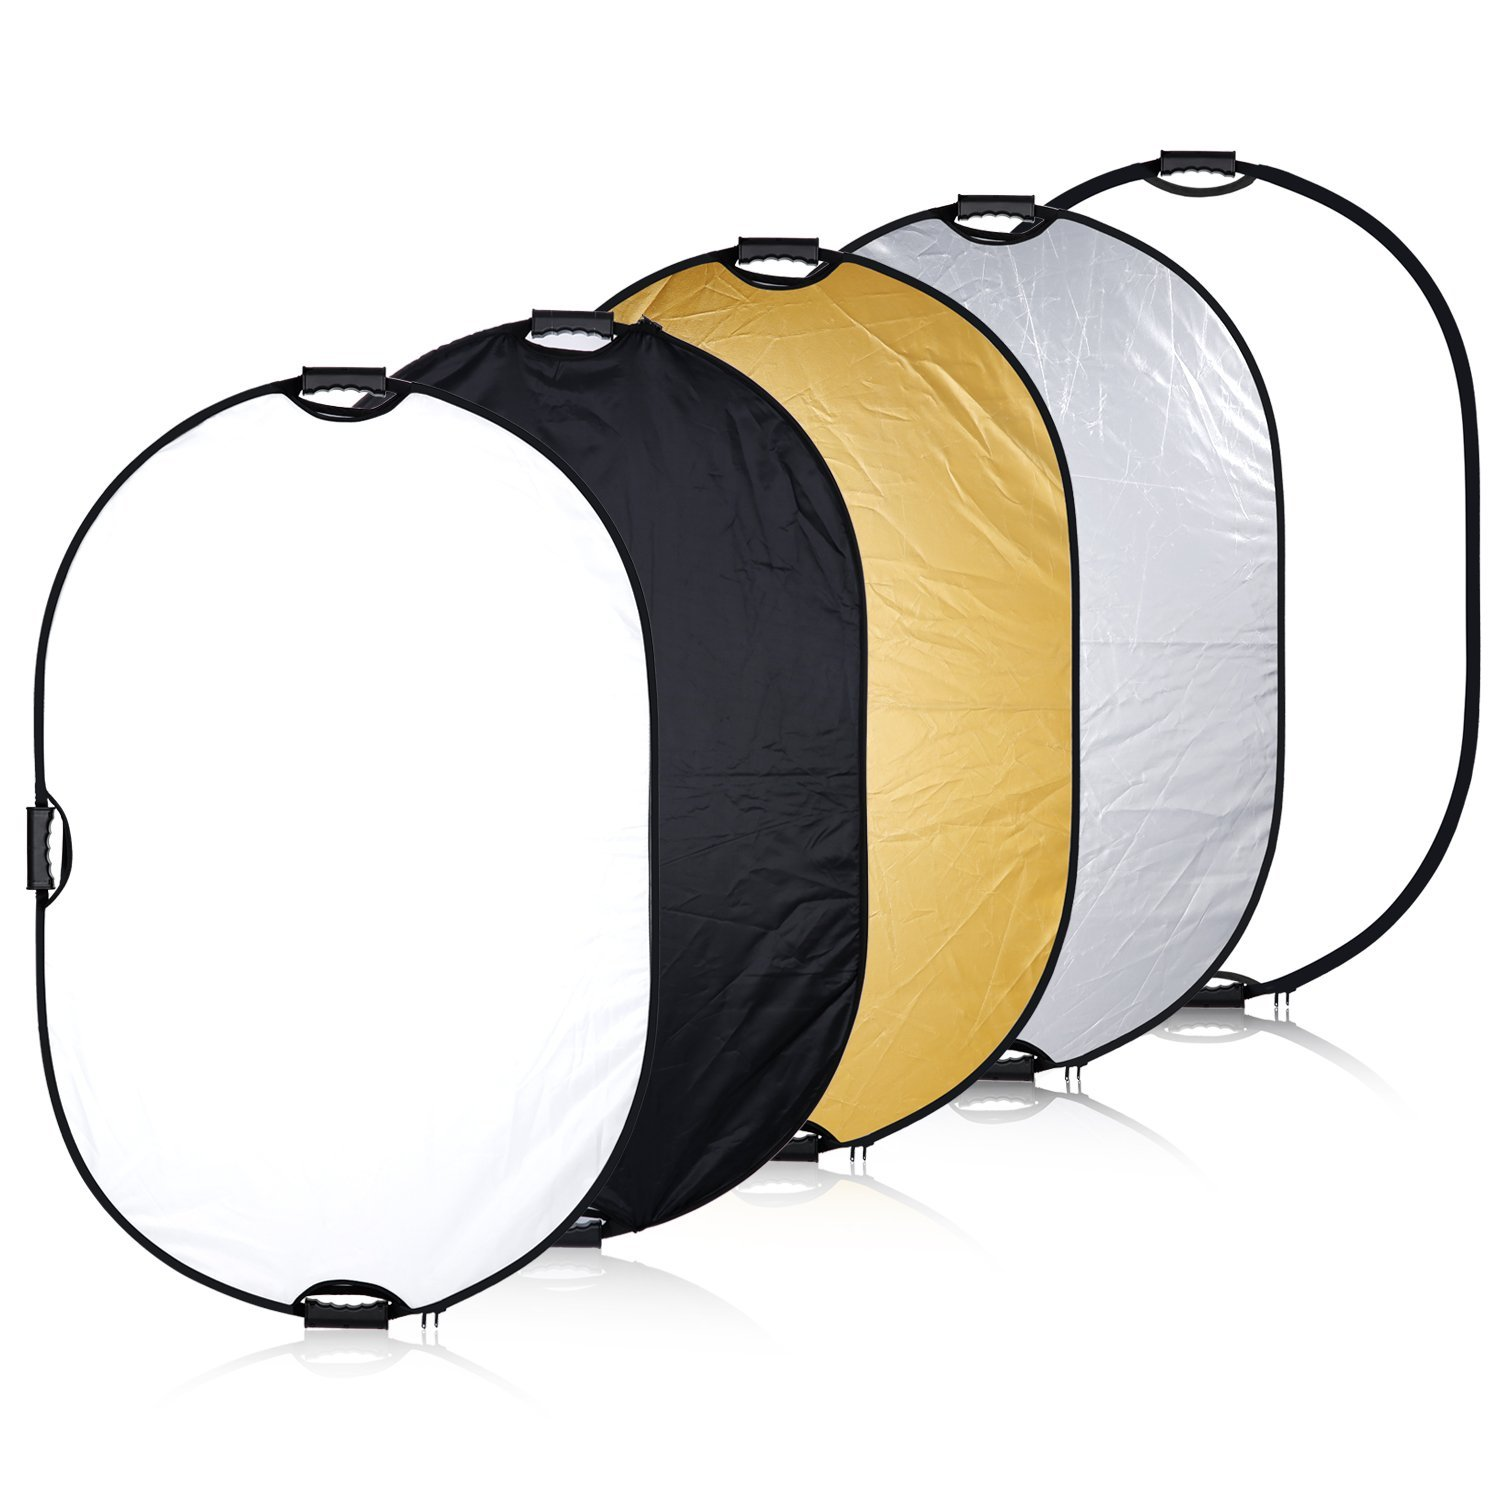 Neewer Portable 5-in-1 32x48inch/80x122cm Multi-Disc Oval Light Reflector with 3 Handle for Photography Photo Studio Lighting & Outdoor Lighting -Translucent, Silver, Gold, White and Black